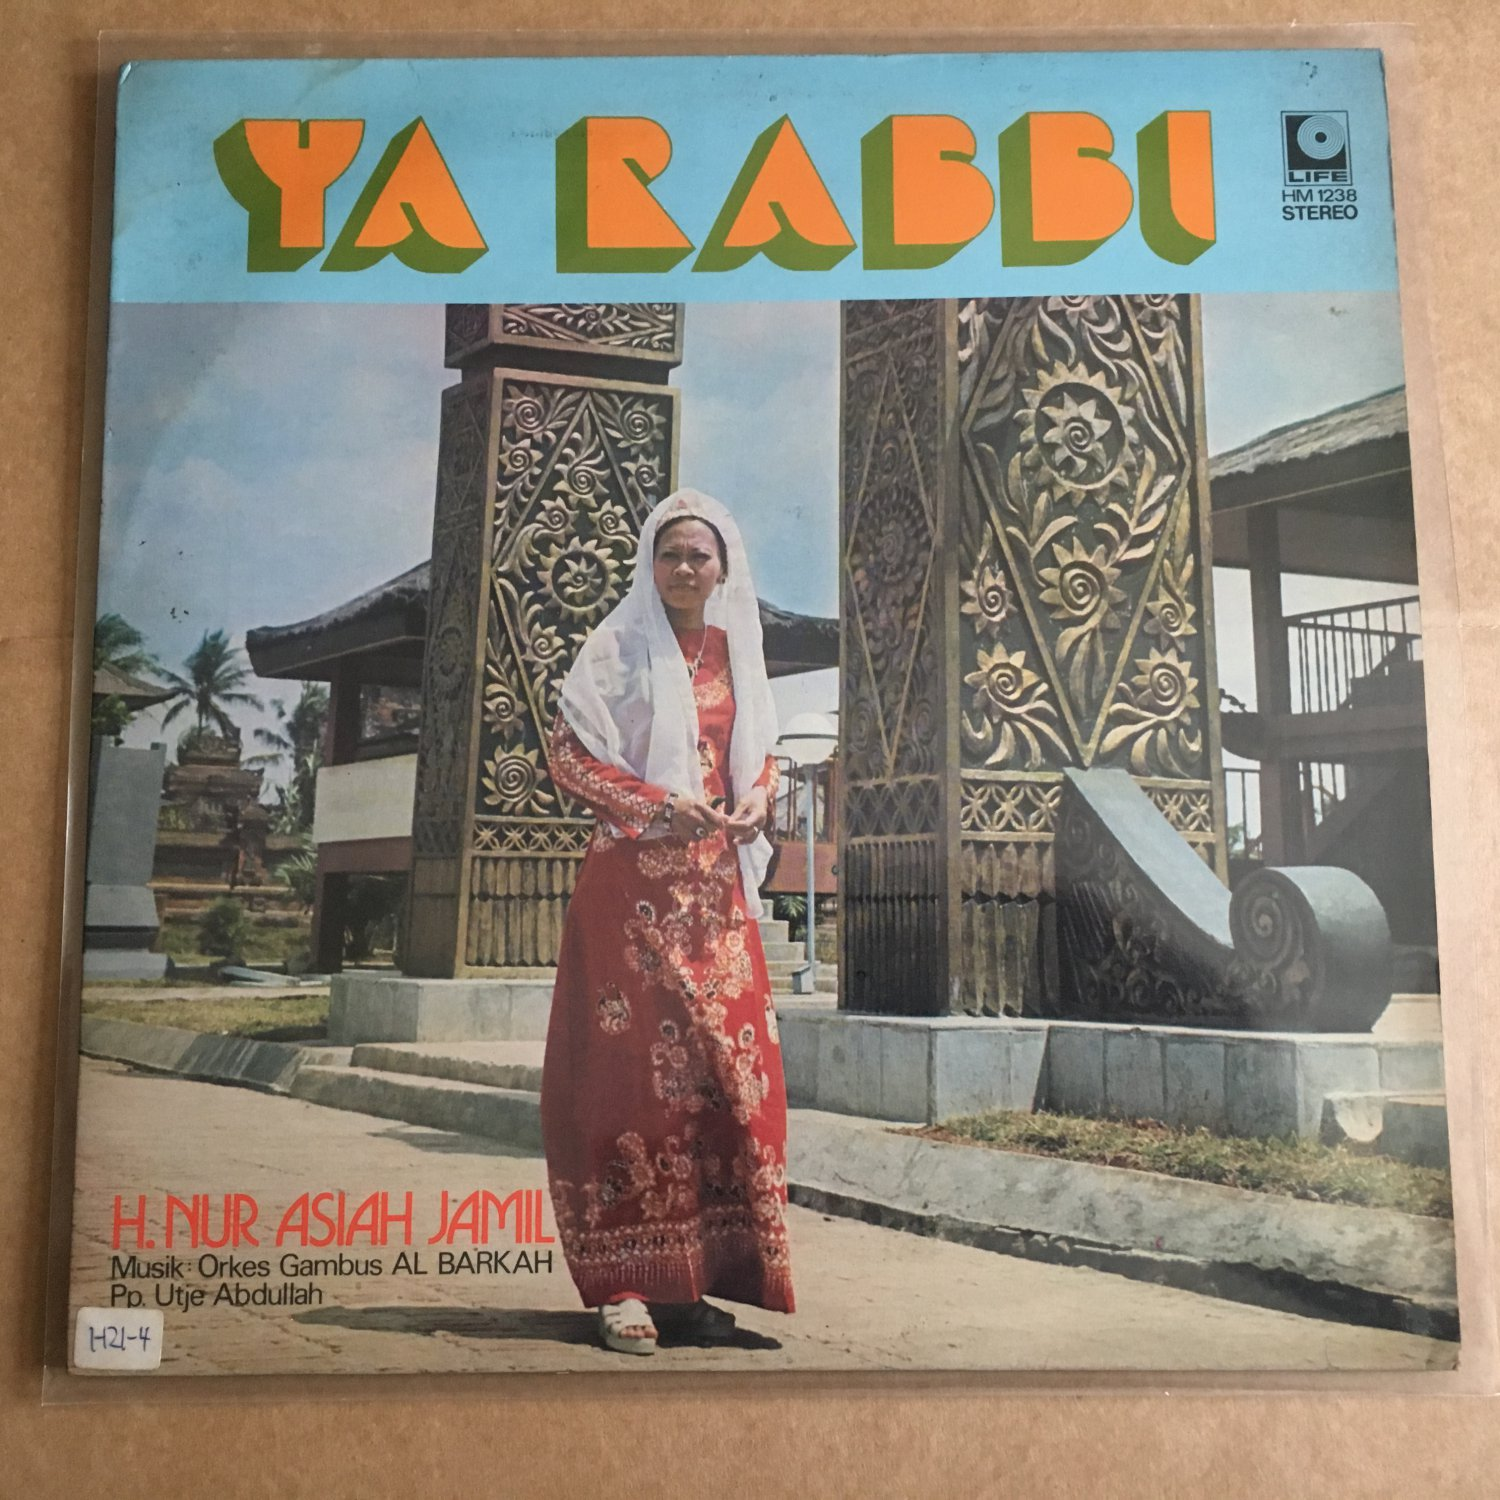 H. NUR ASIAH JAMIL & ORKES GAMBUS AL BARKAH LP ya Rabbi INDONESIA  mp3 LISTEN